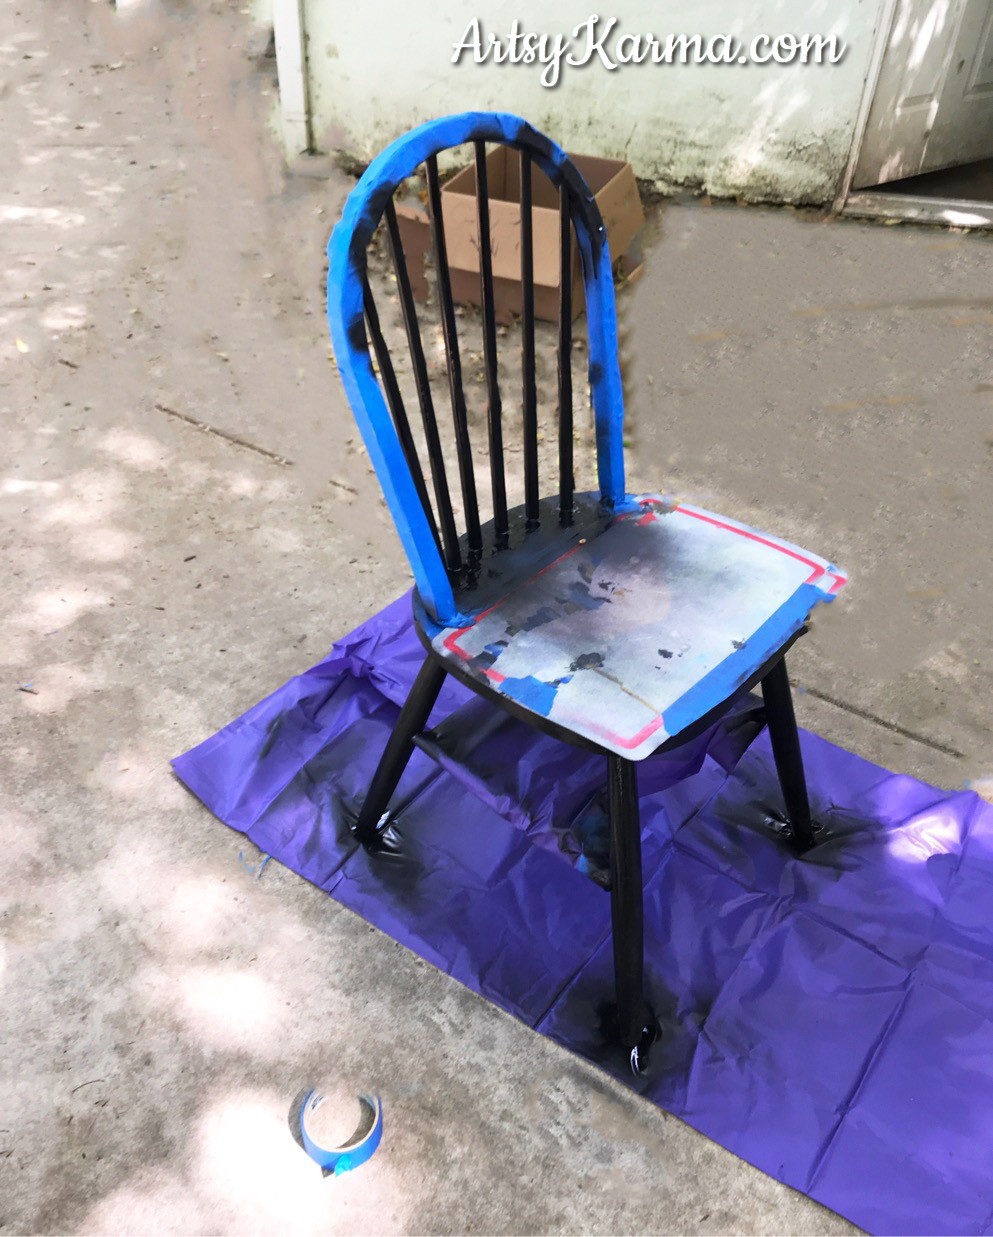 spray paint sections of chair black for makeover